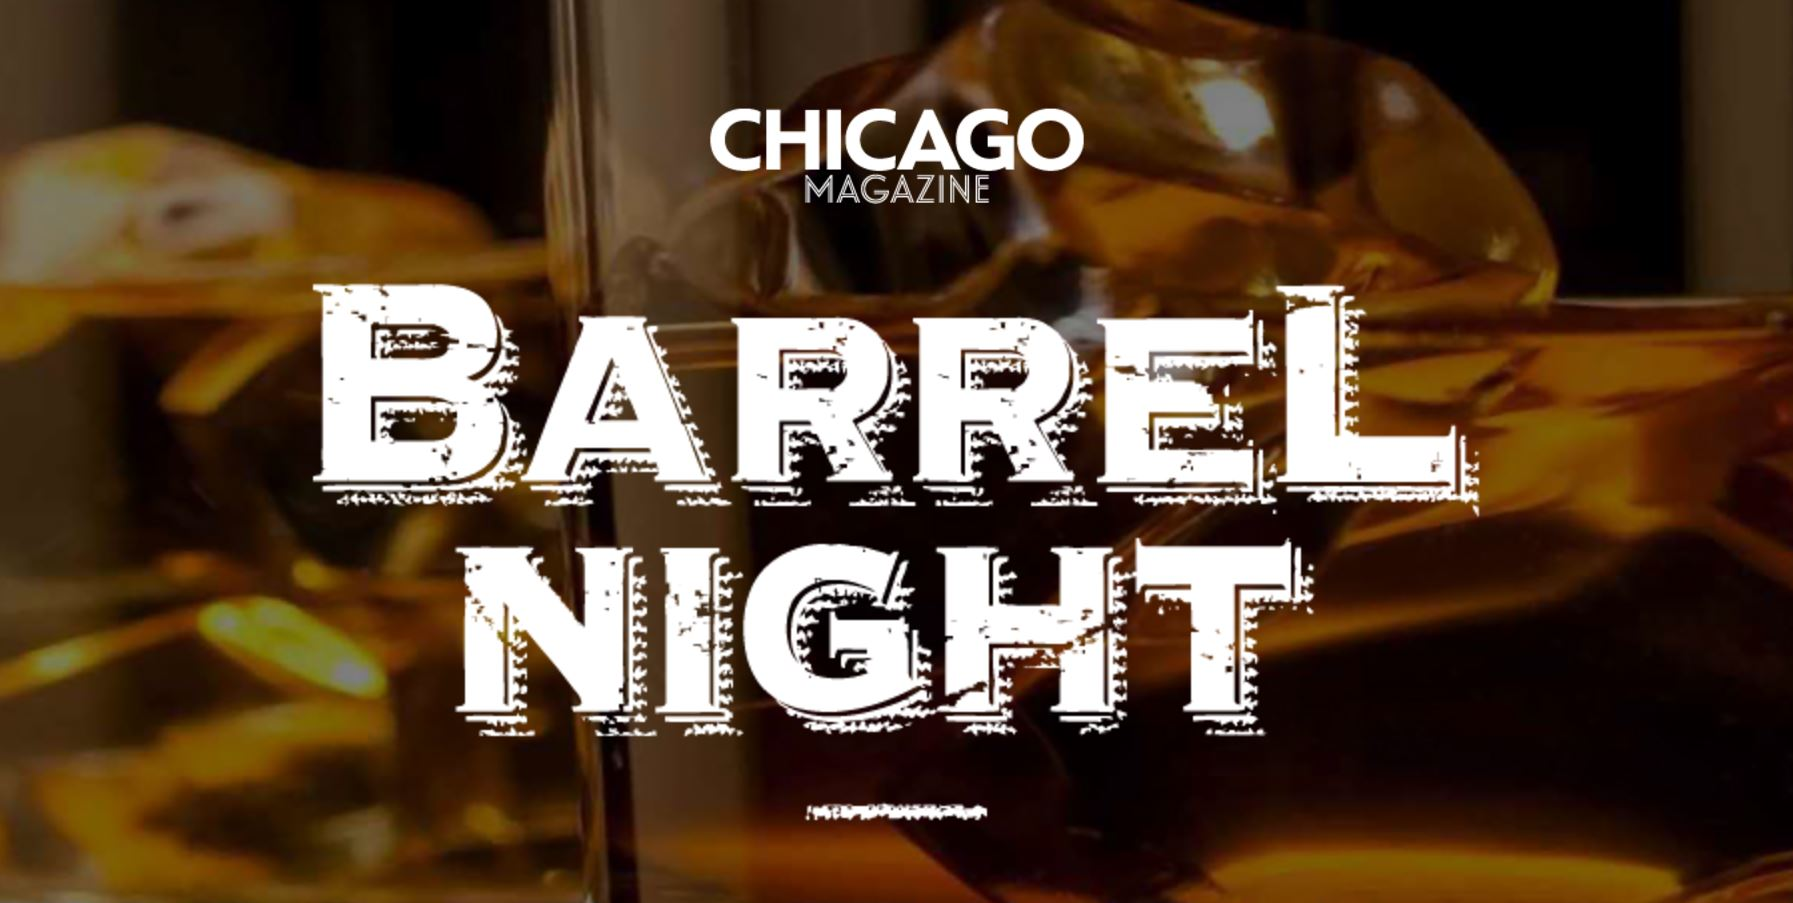 Barrel Night Logos